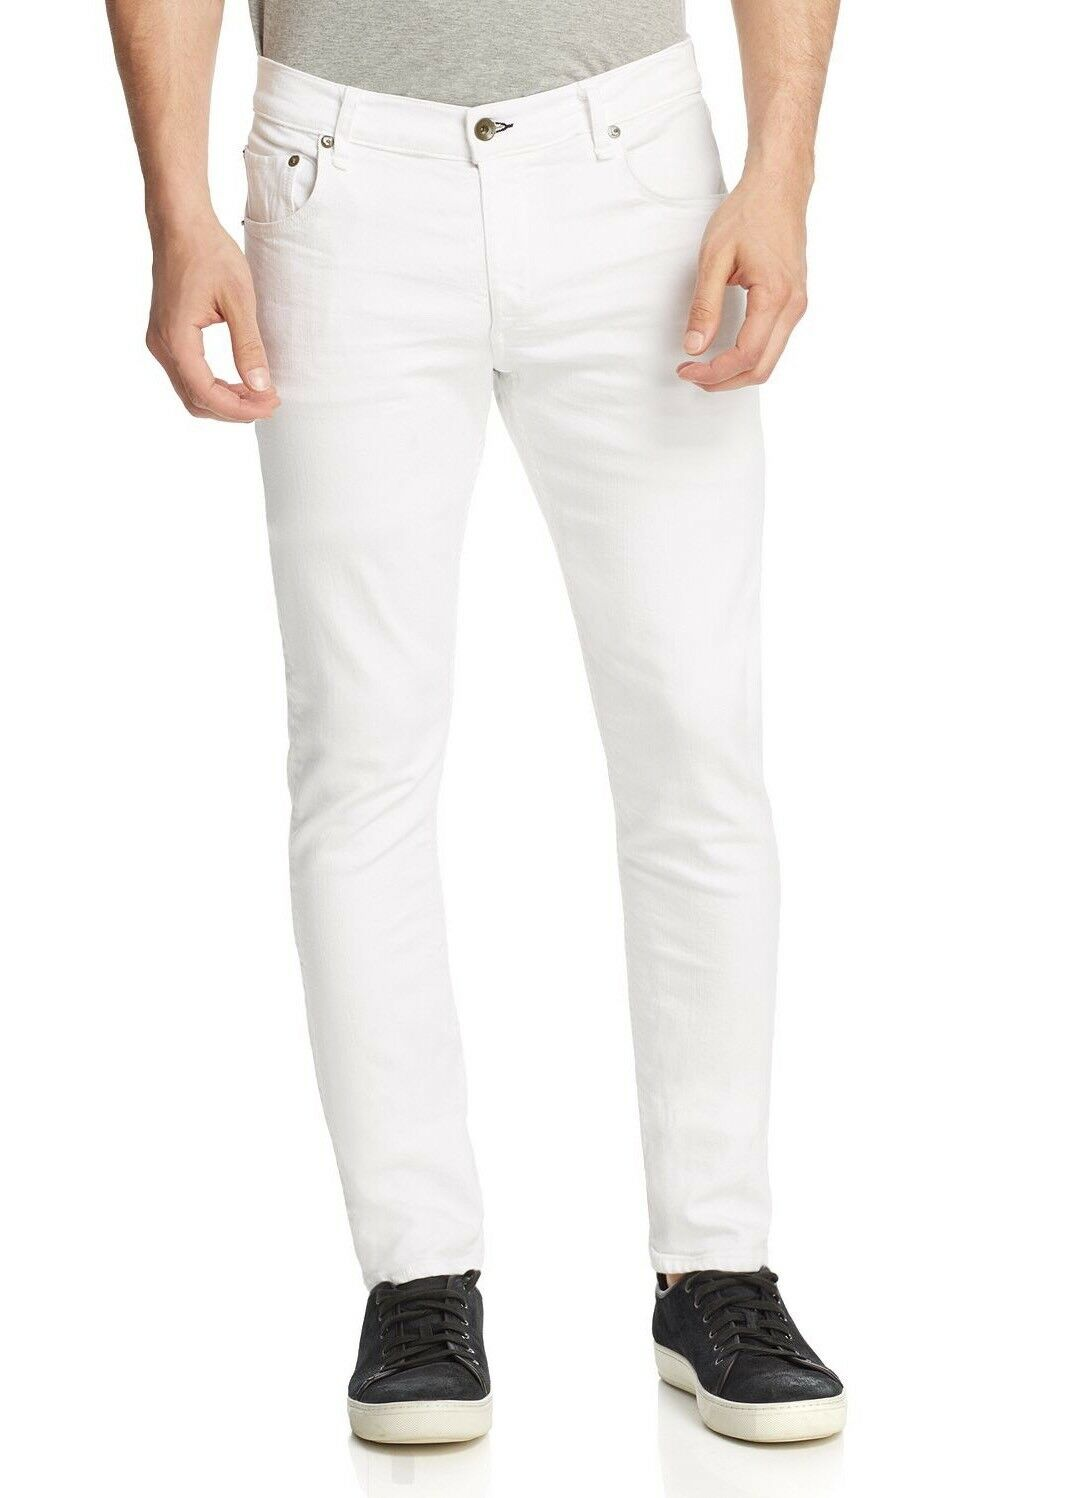 New Rag & Bone Fit 2 Slim Fit Aged White Jeans Sz. 38 Multiple Sizes Available